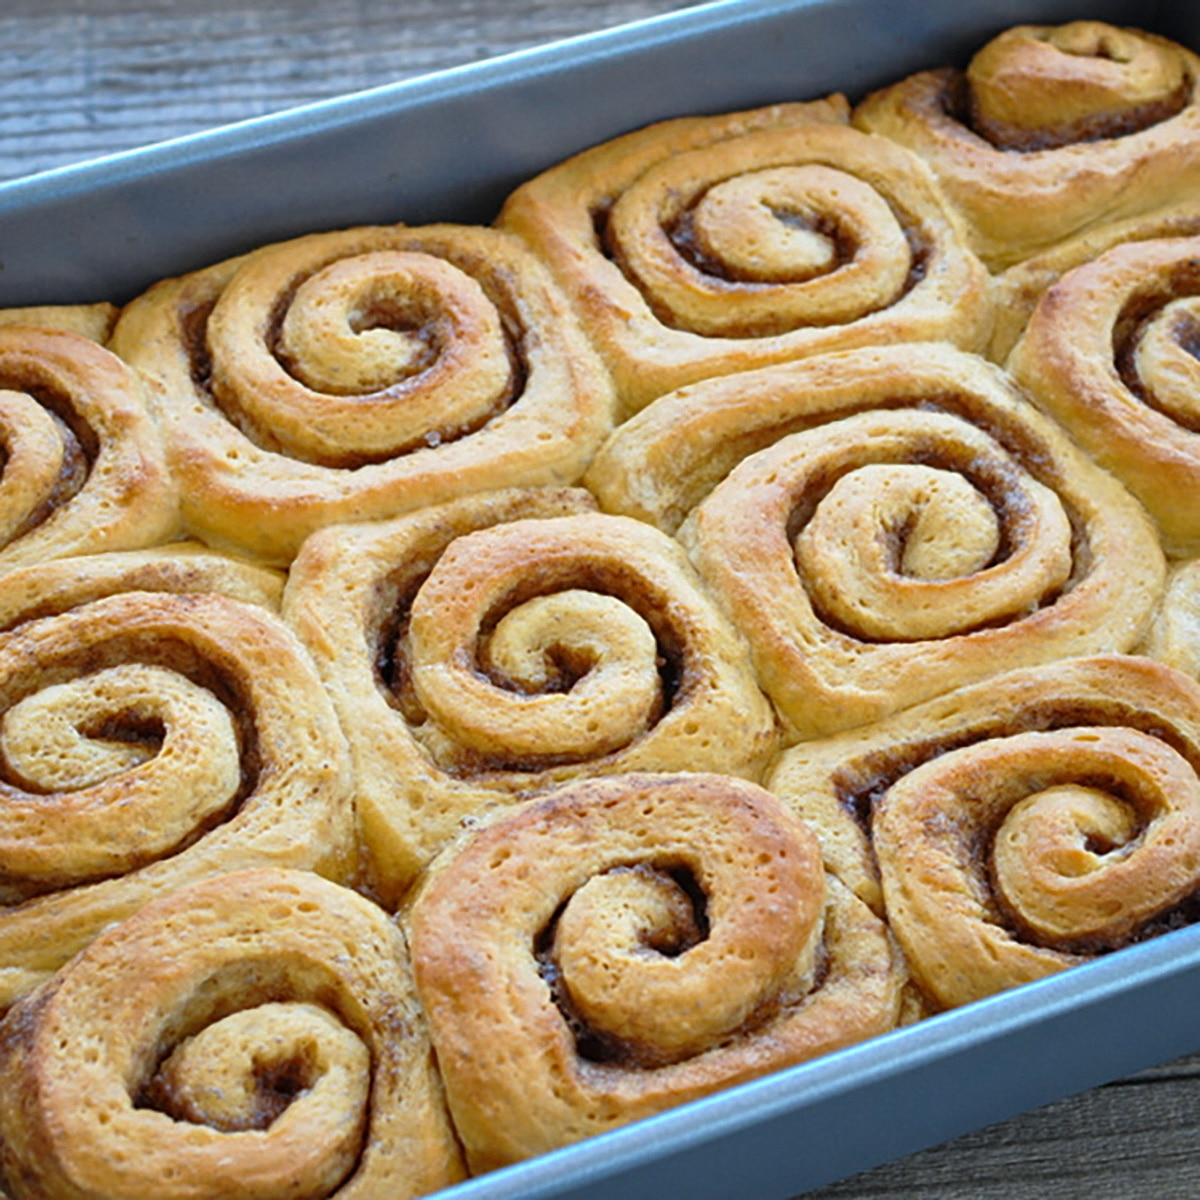 just baked sticky rolls still in the baking pan